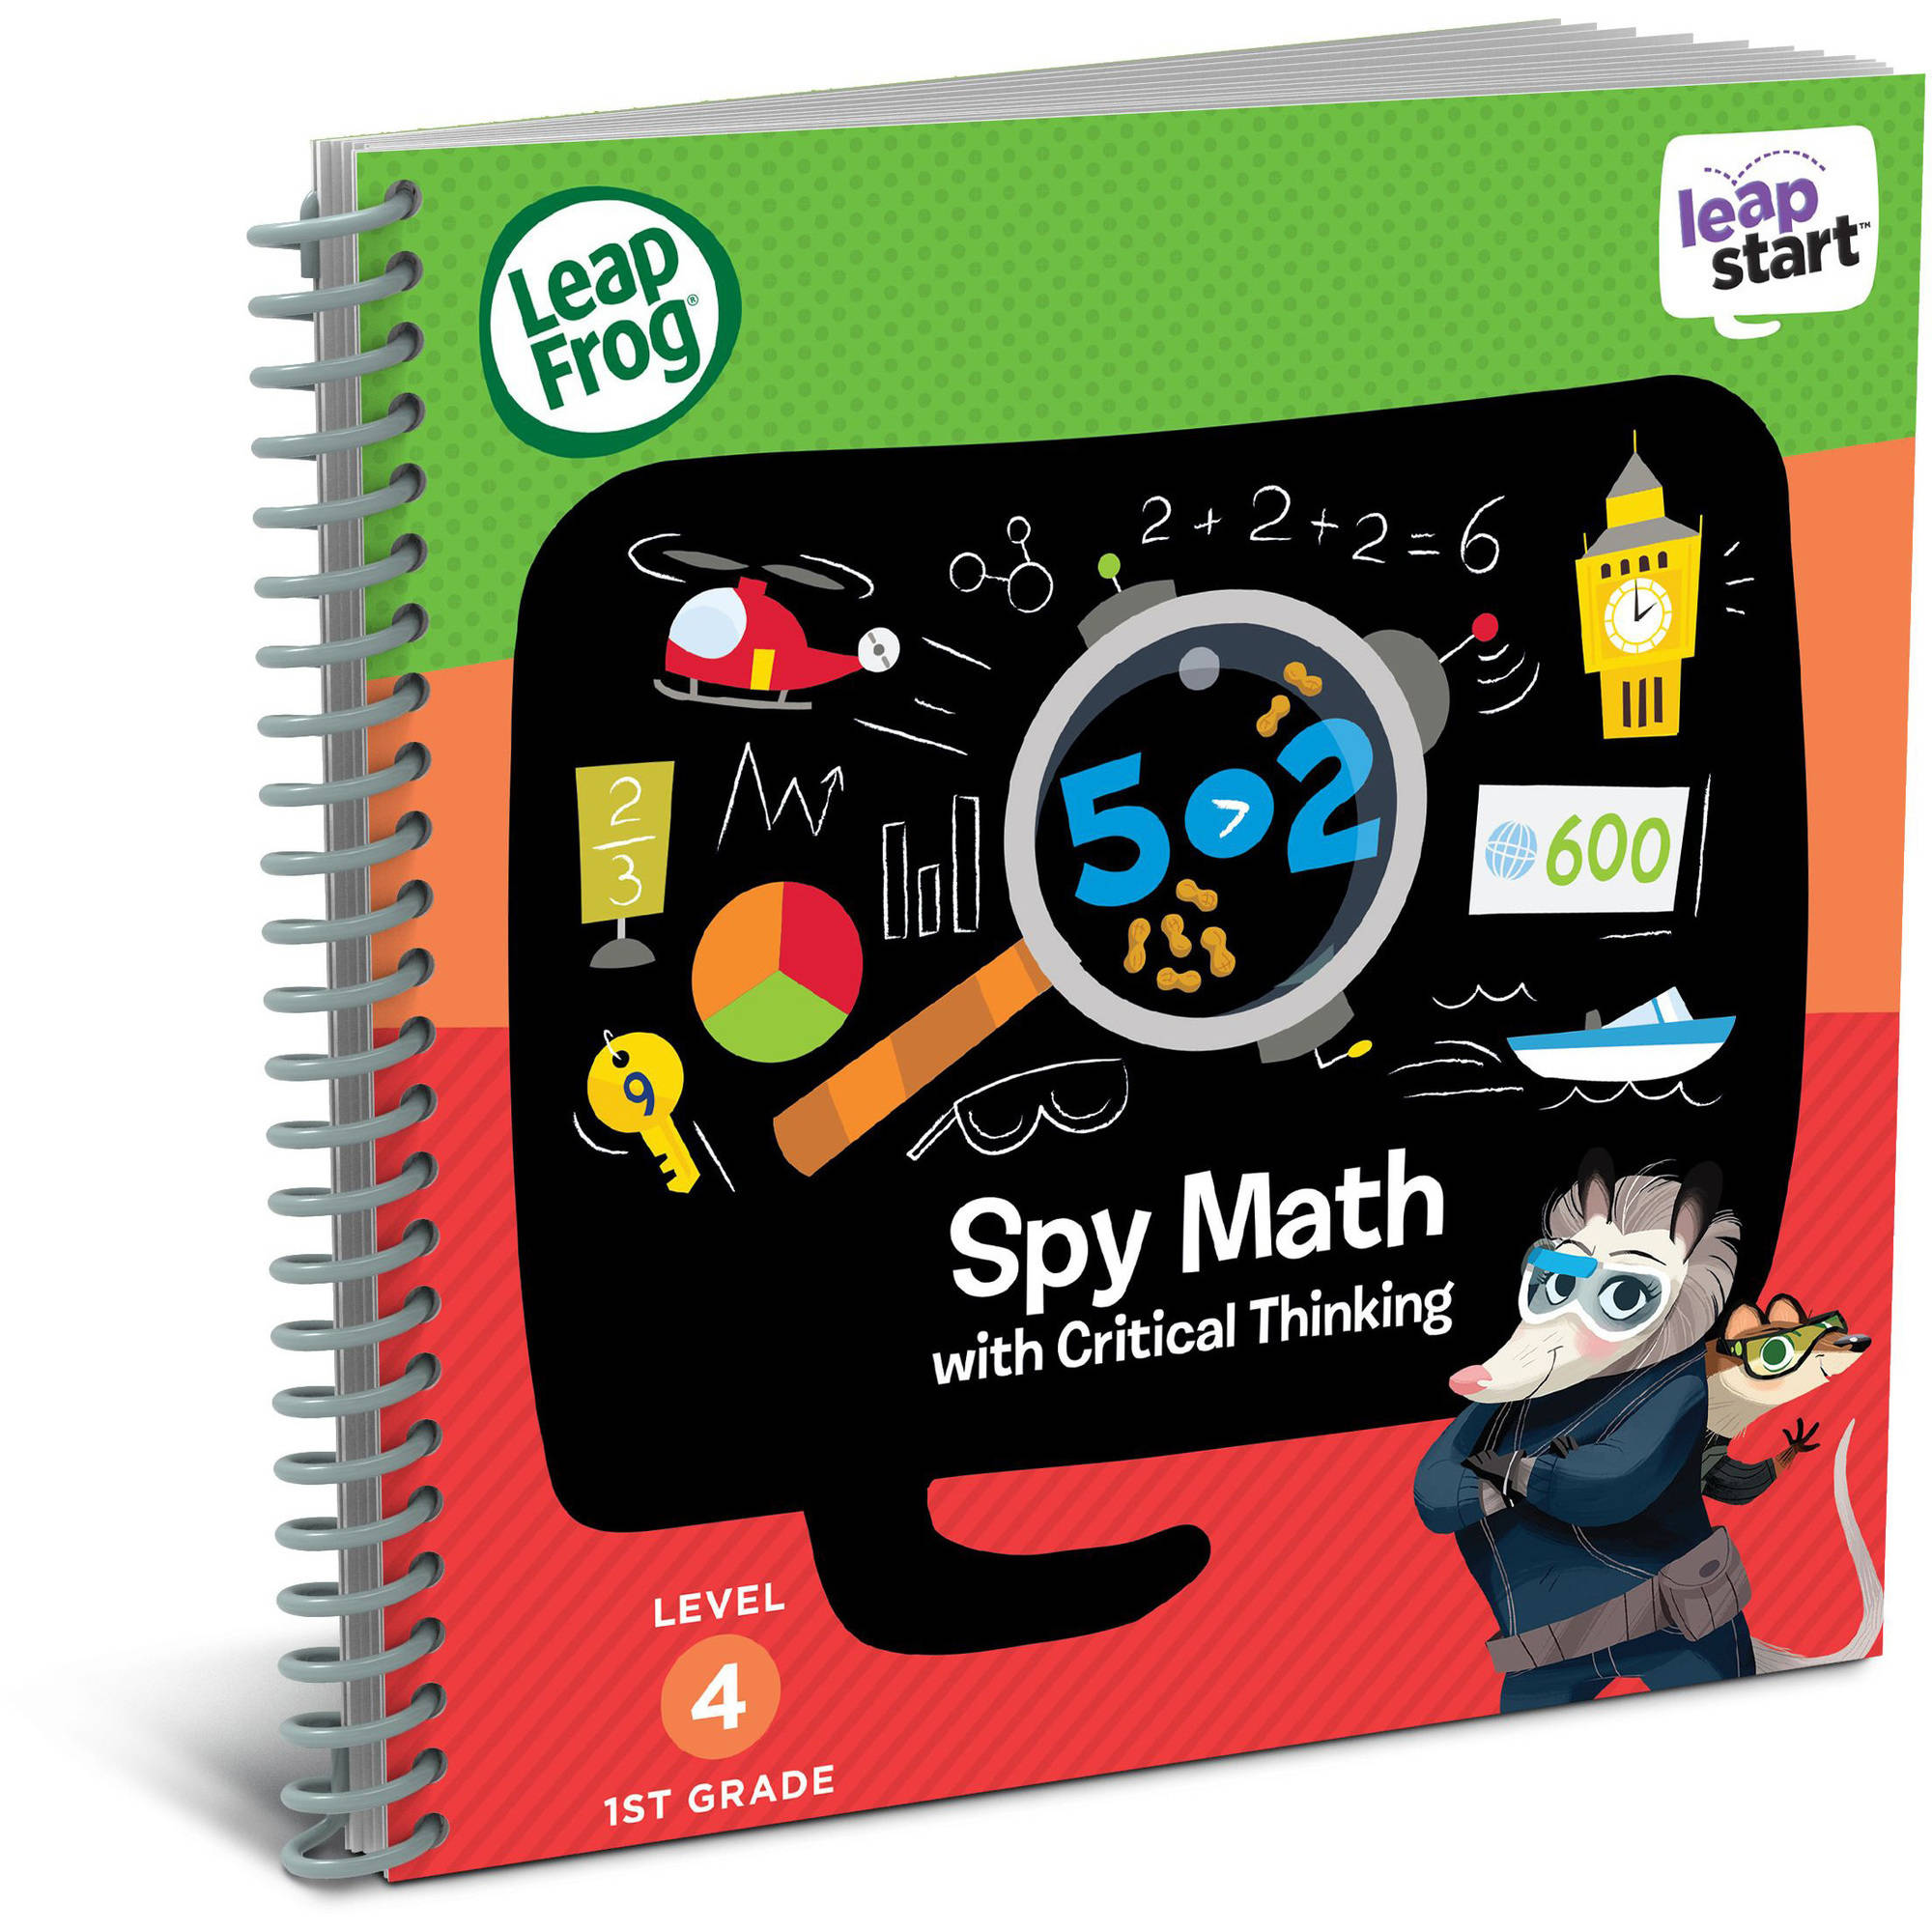 LeapFrog LeapStart 1st Grade Activity Book: Spy Math and Critical Thinking by Generic